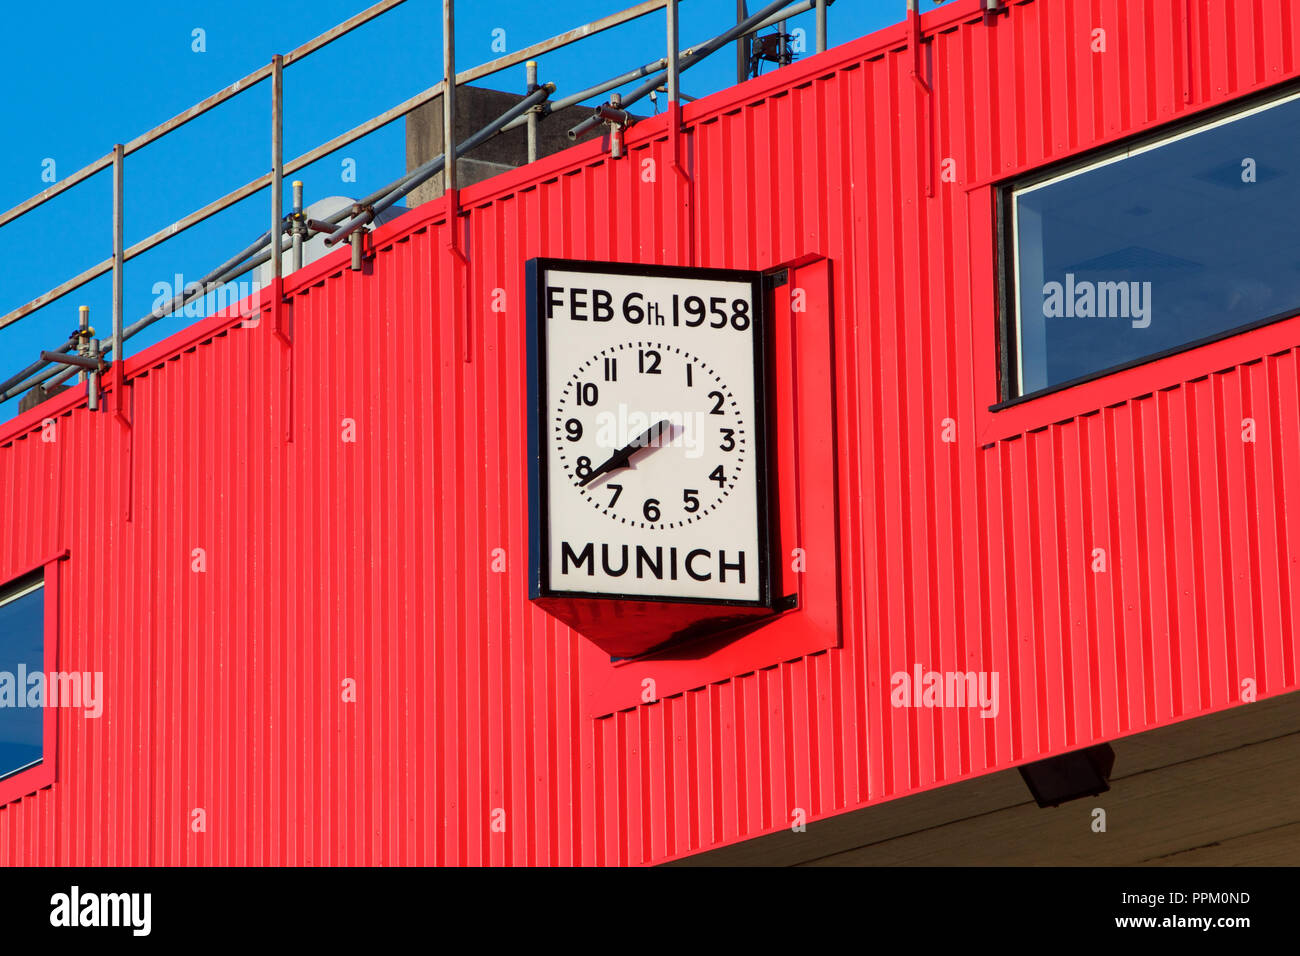 Clock on Old Trafford, Manchester United's home stadium, showing the date and time of the Munich air crash - Stock Image